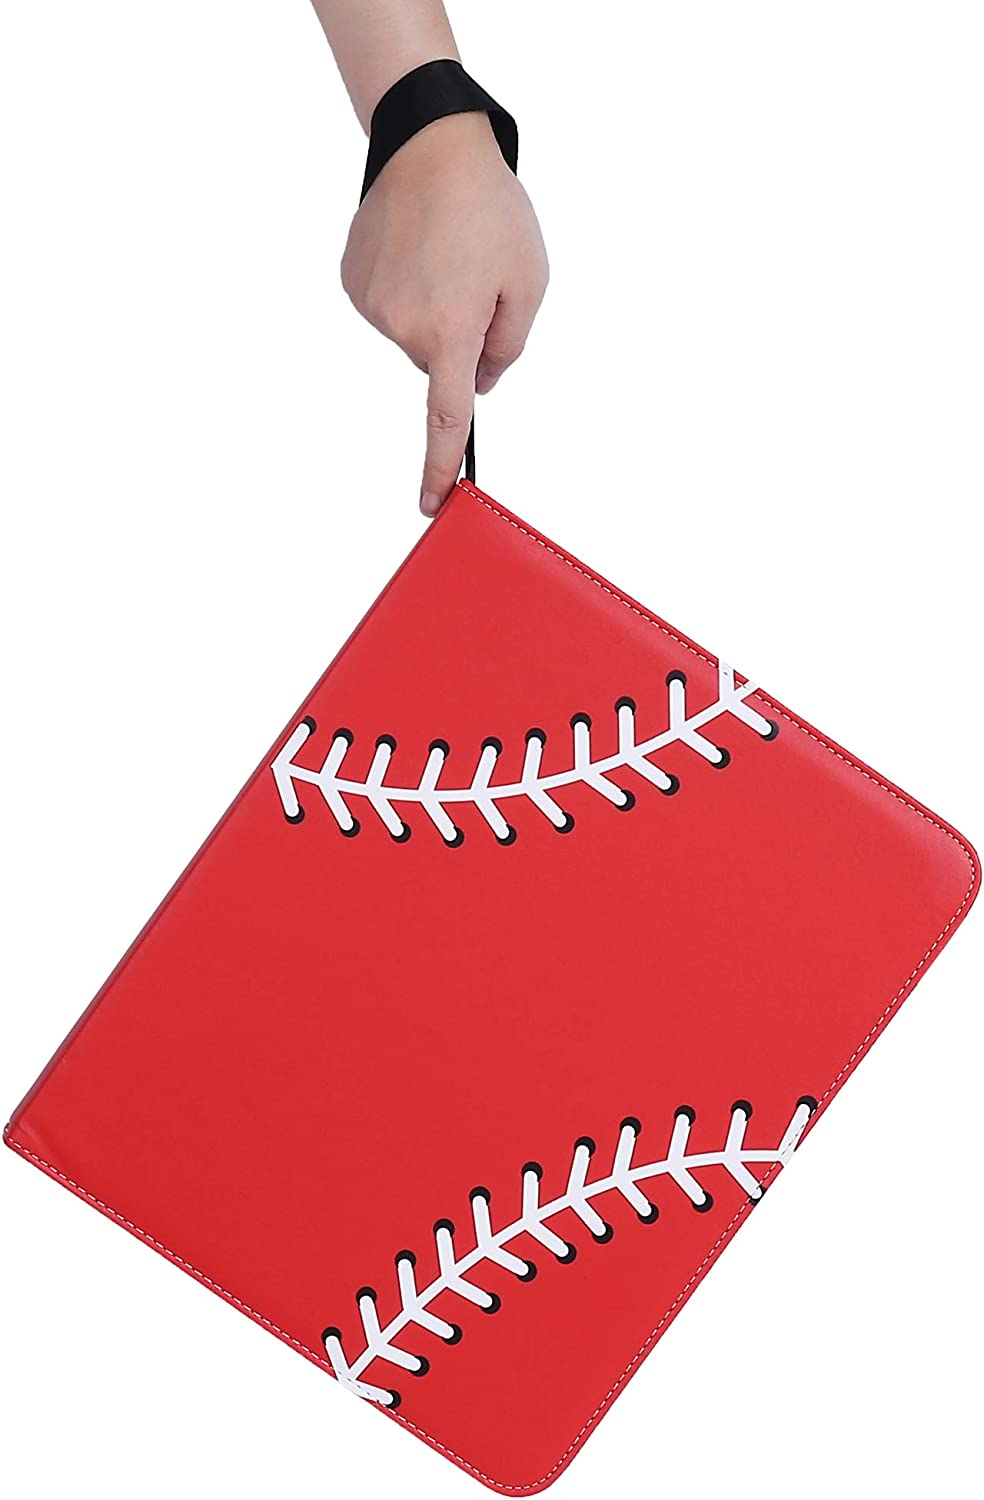 NeatoTek Double Sided 40 Pages 720 Pockets Baseball Card Binder for Baseball Trading Cards Display Case with Baseball Card Sleeves Card Holder Protectors Set for Baseball Card and Sports Card